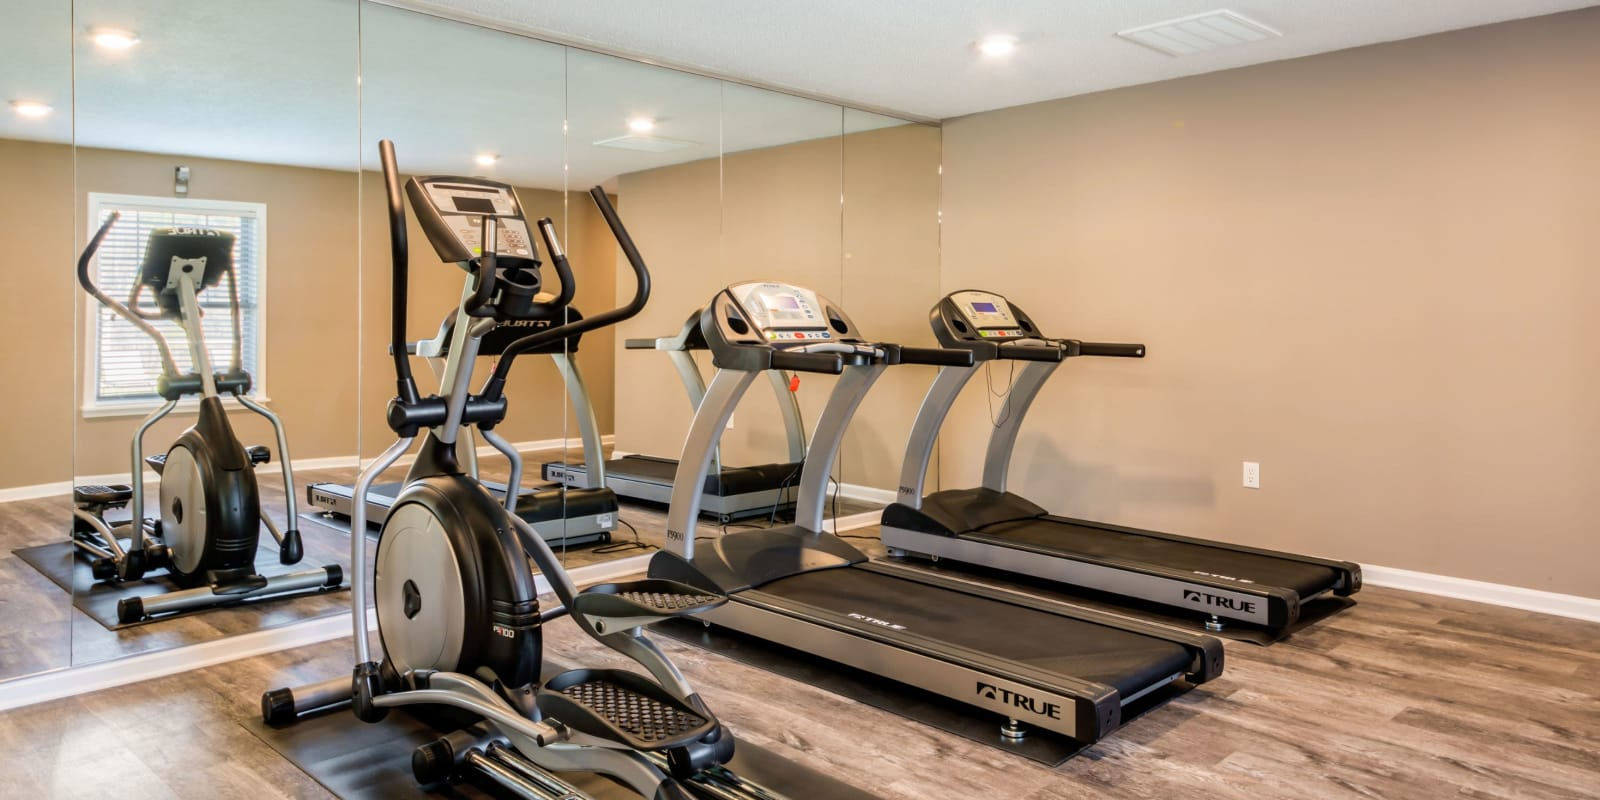 Fitness center with treadmills at Alexander Station Apartment Homes in Salisbury, North Carolina